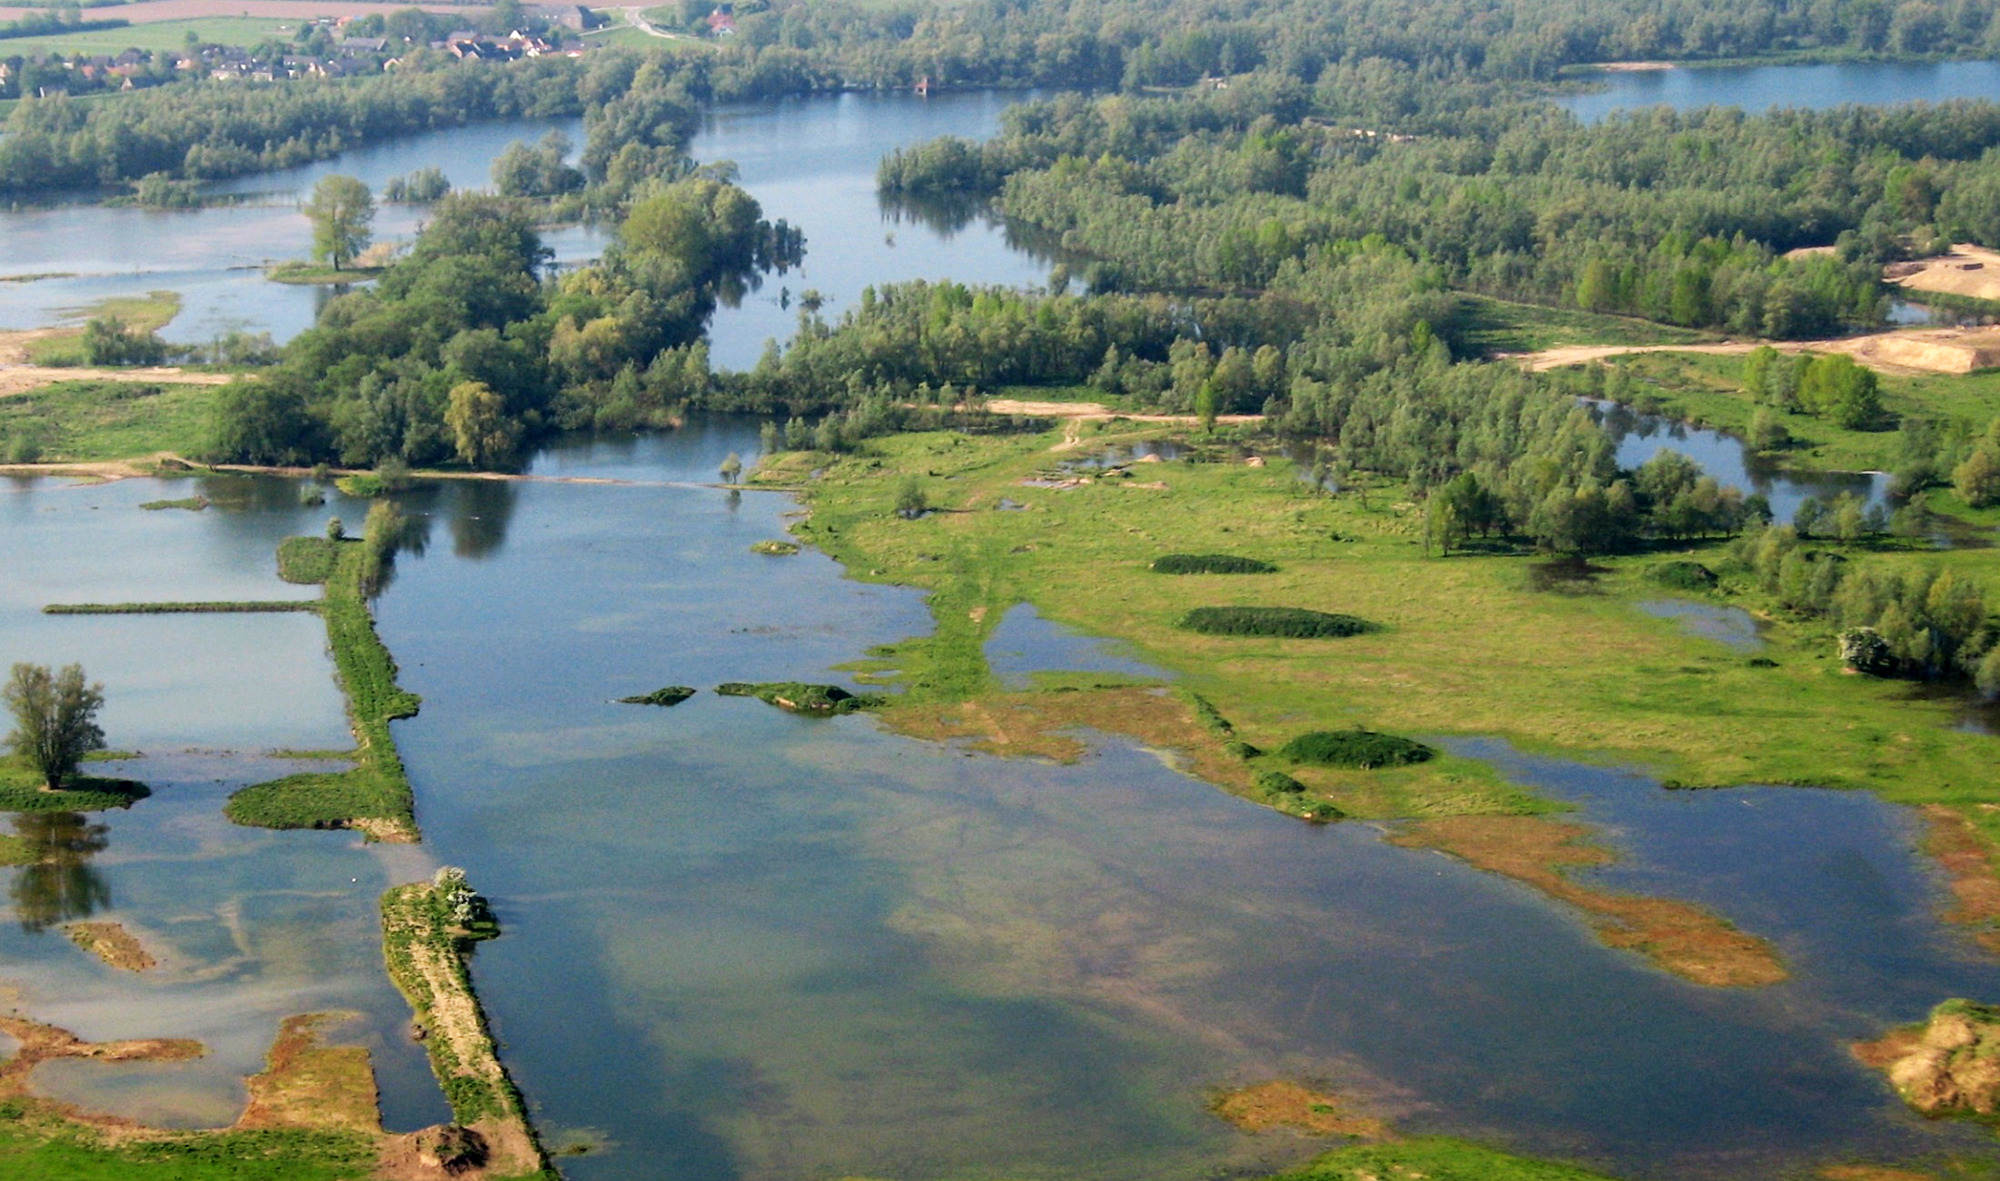 As a pioneer rewilding site the Millingerwaard has demonstrated perfectly how both people and wild nature can benefit when natural processes are given free rein to reshape landscapes.